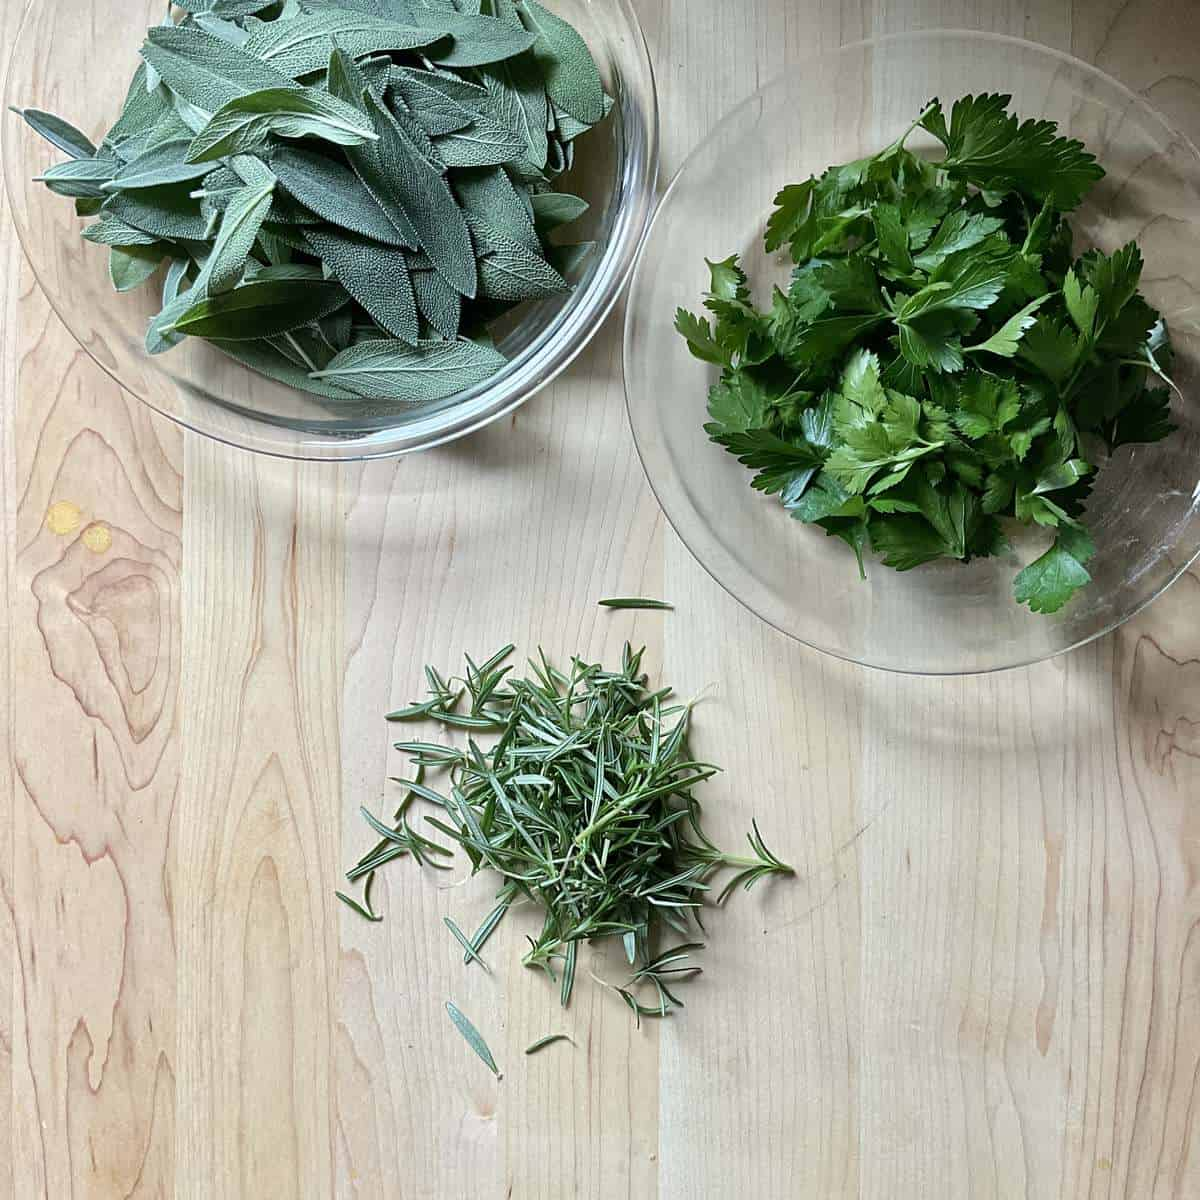 Fresh herb leaves without stalks.